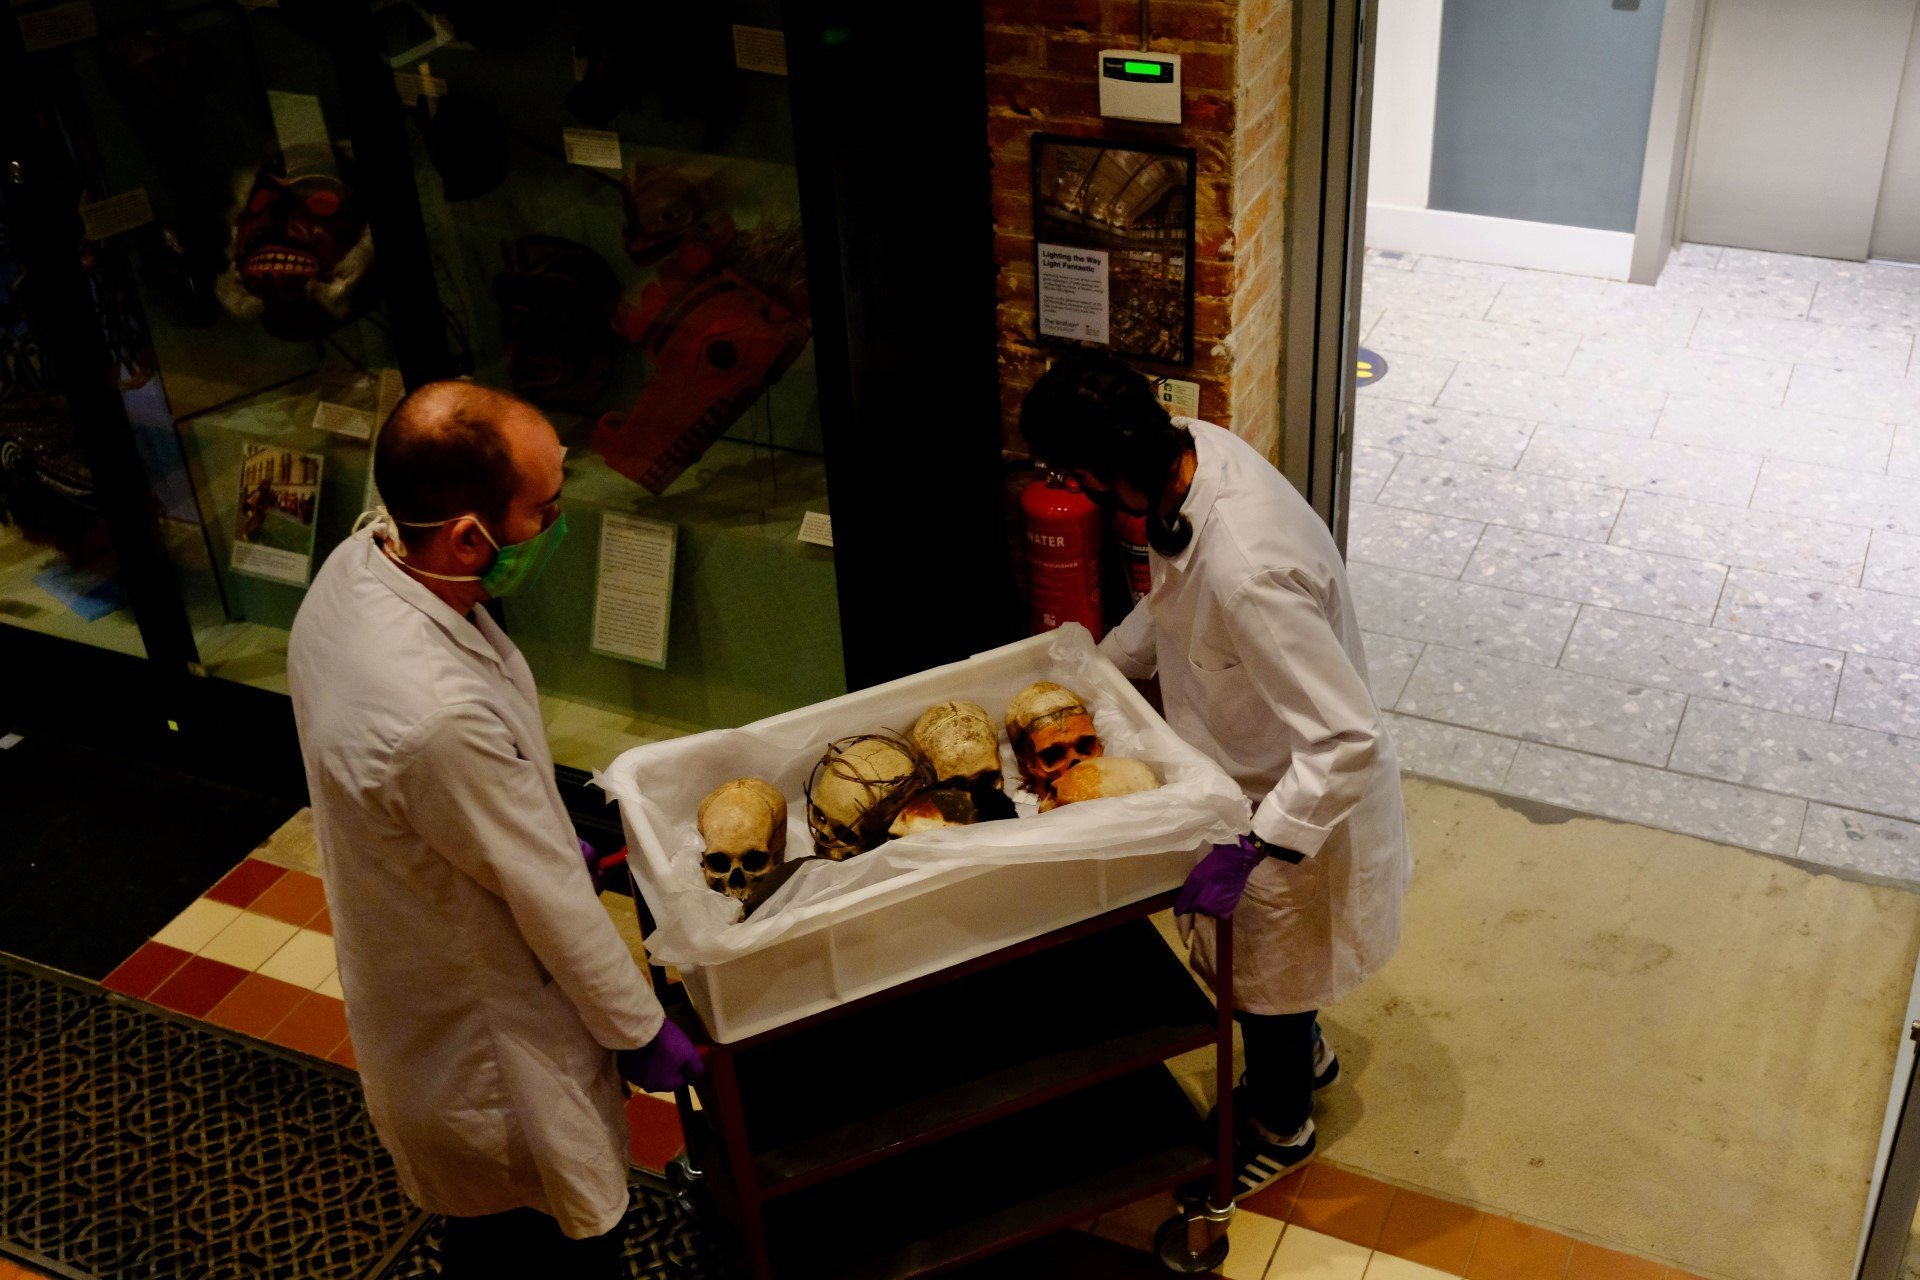 Pitt Rivers Museum reopening will reveal critical changes to displays - Human Remains being taken into storage